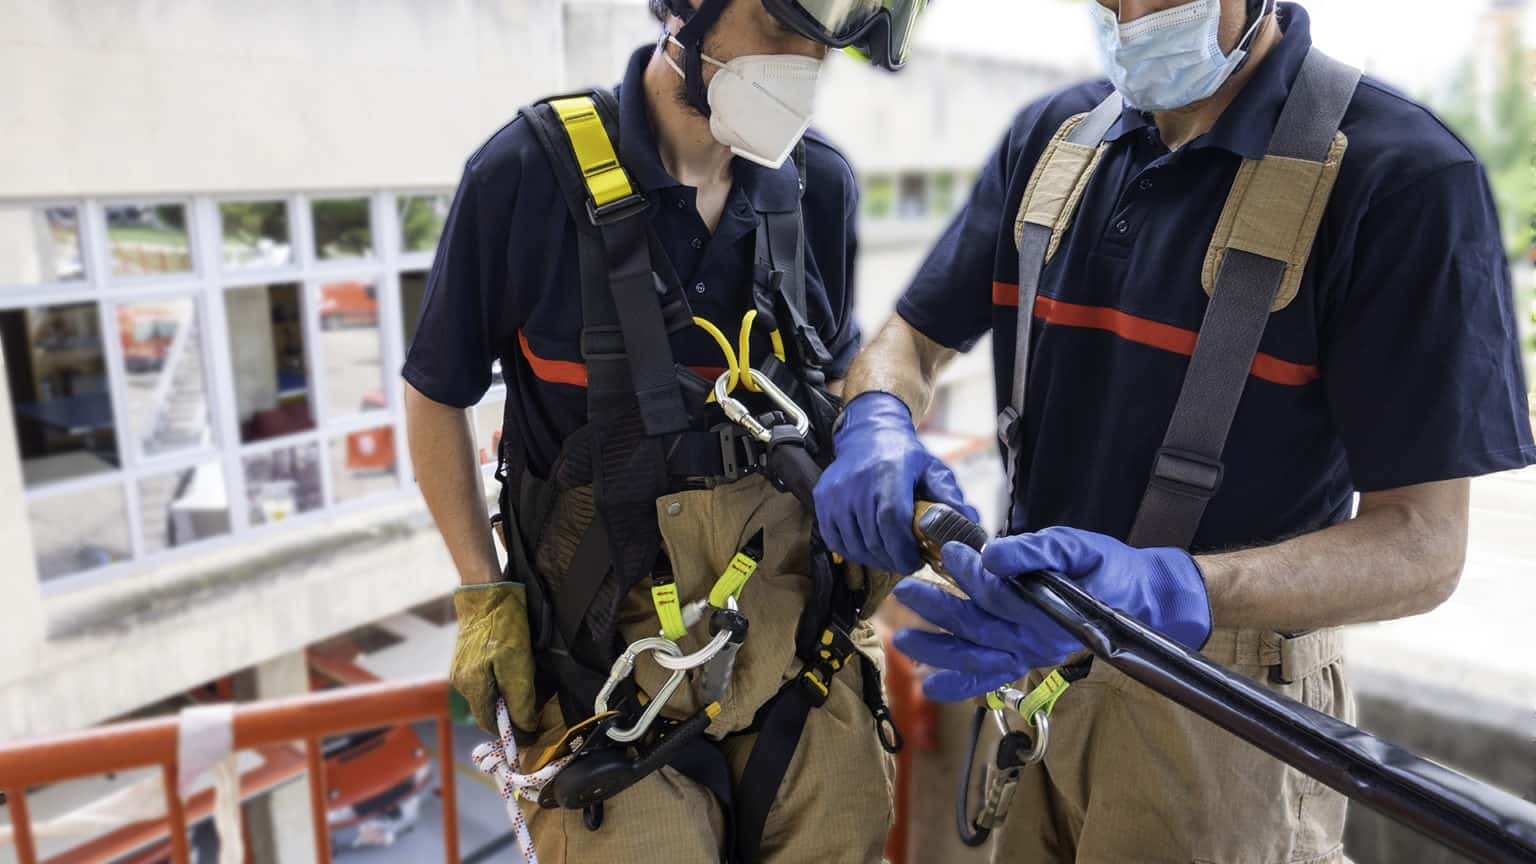 Firefighters in vertical rescue practices during a training exercise.